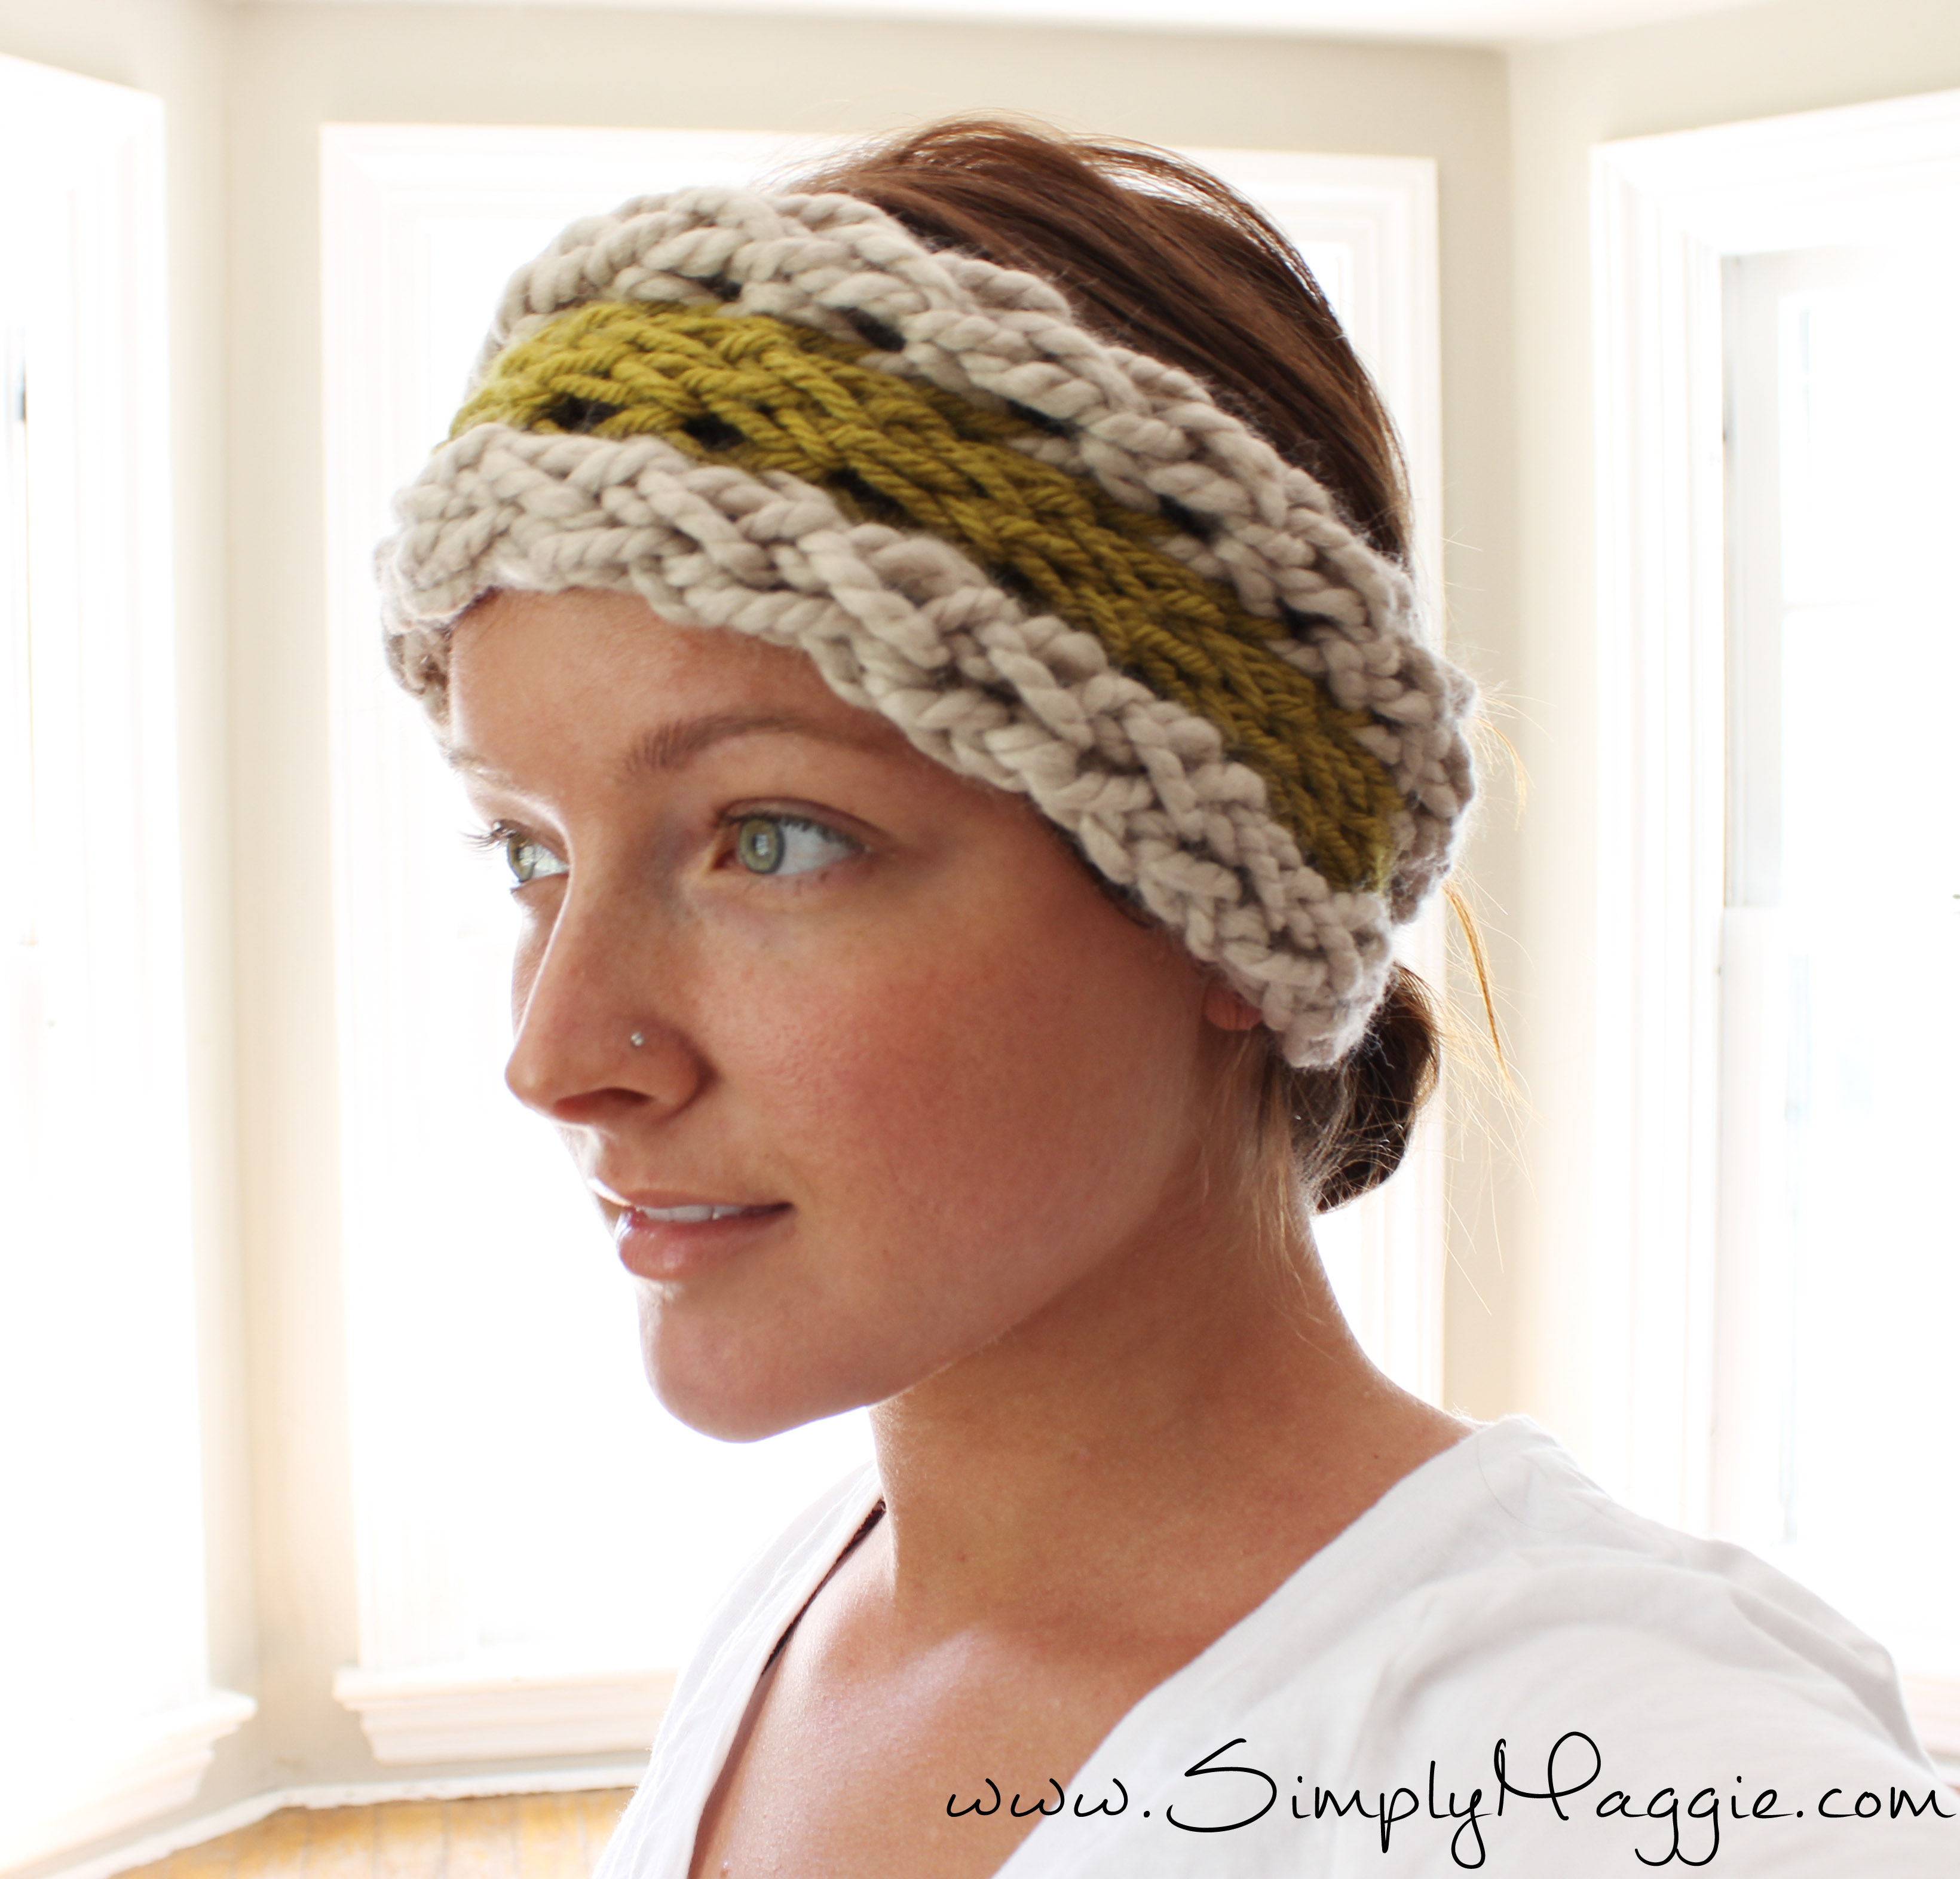 Diy 15 minute finger knit ear warmer simplymaggie how to finger knit an ear warmer in 15 minutes with simply maggie bankloansurffo Image collections